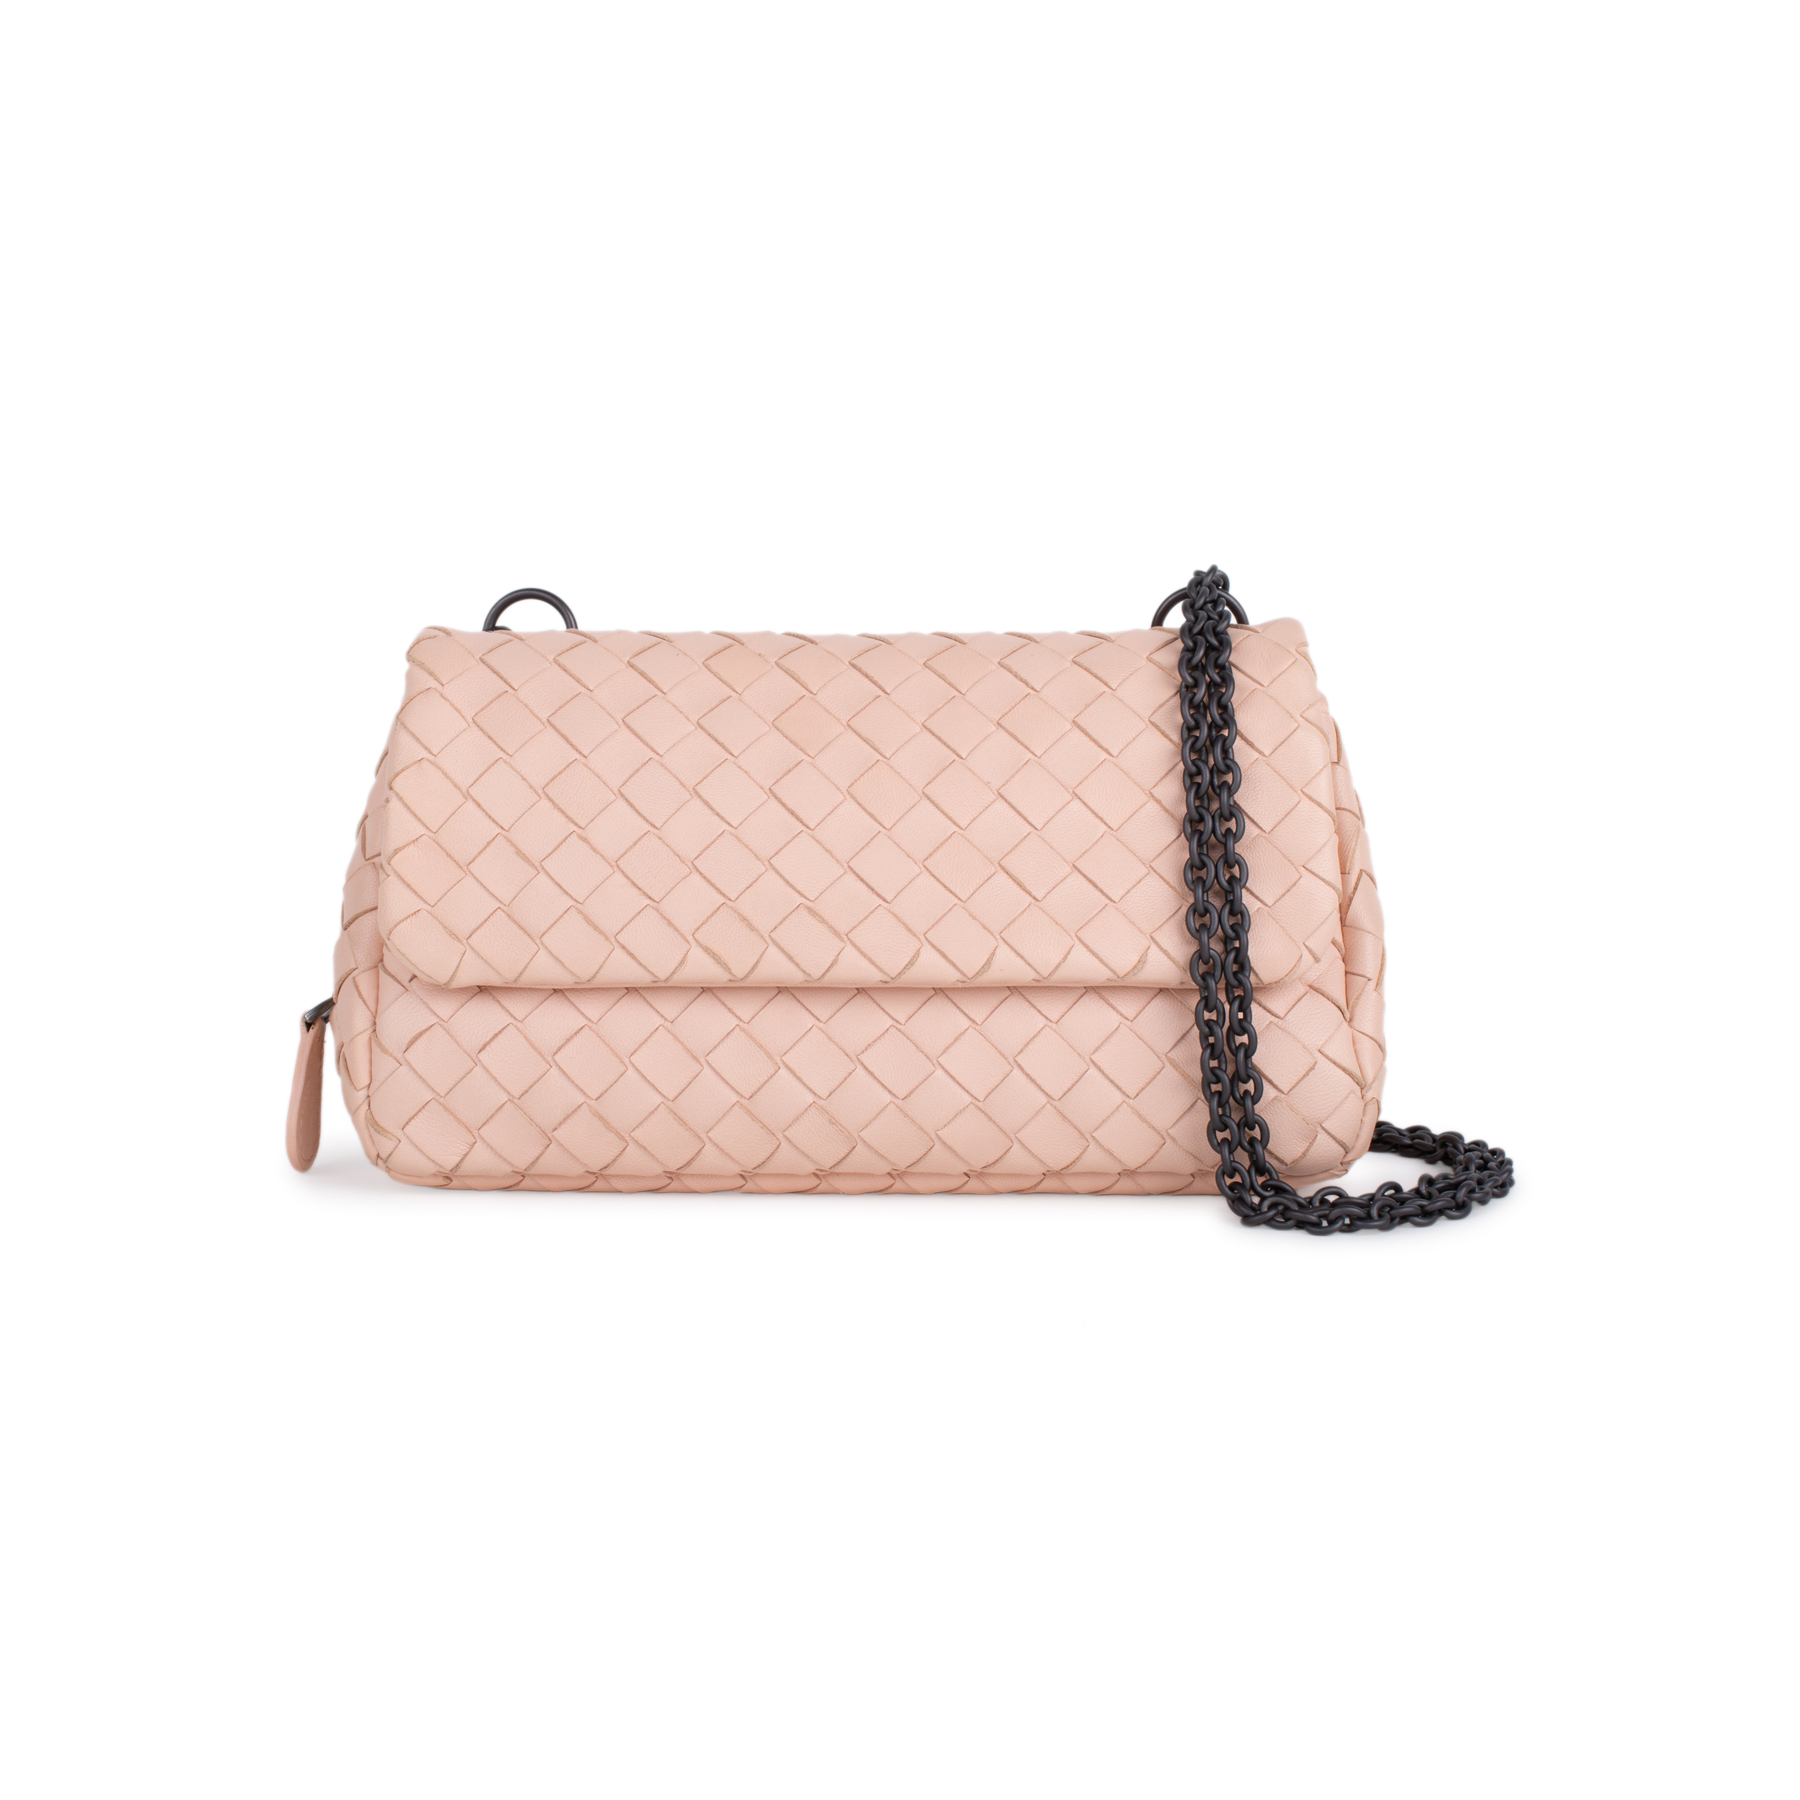 761e9399c008 Authentic Second Hand Bottega Veneta Intrecciato Mini Crossbody Bag  (PSS-434-00010)